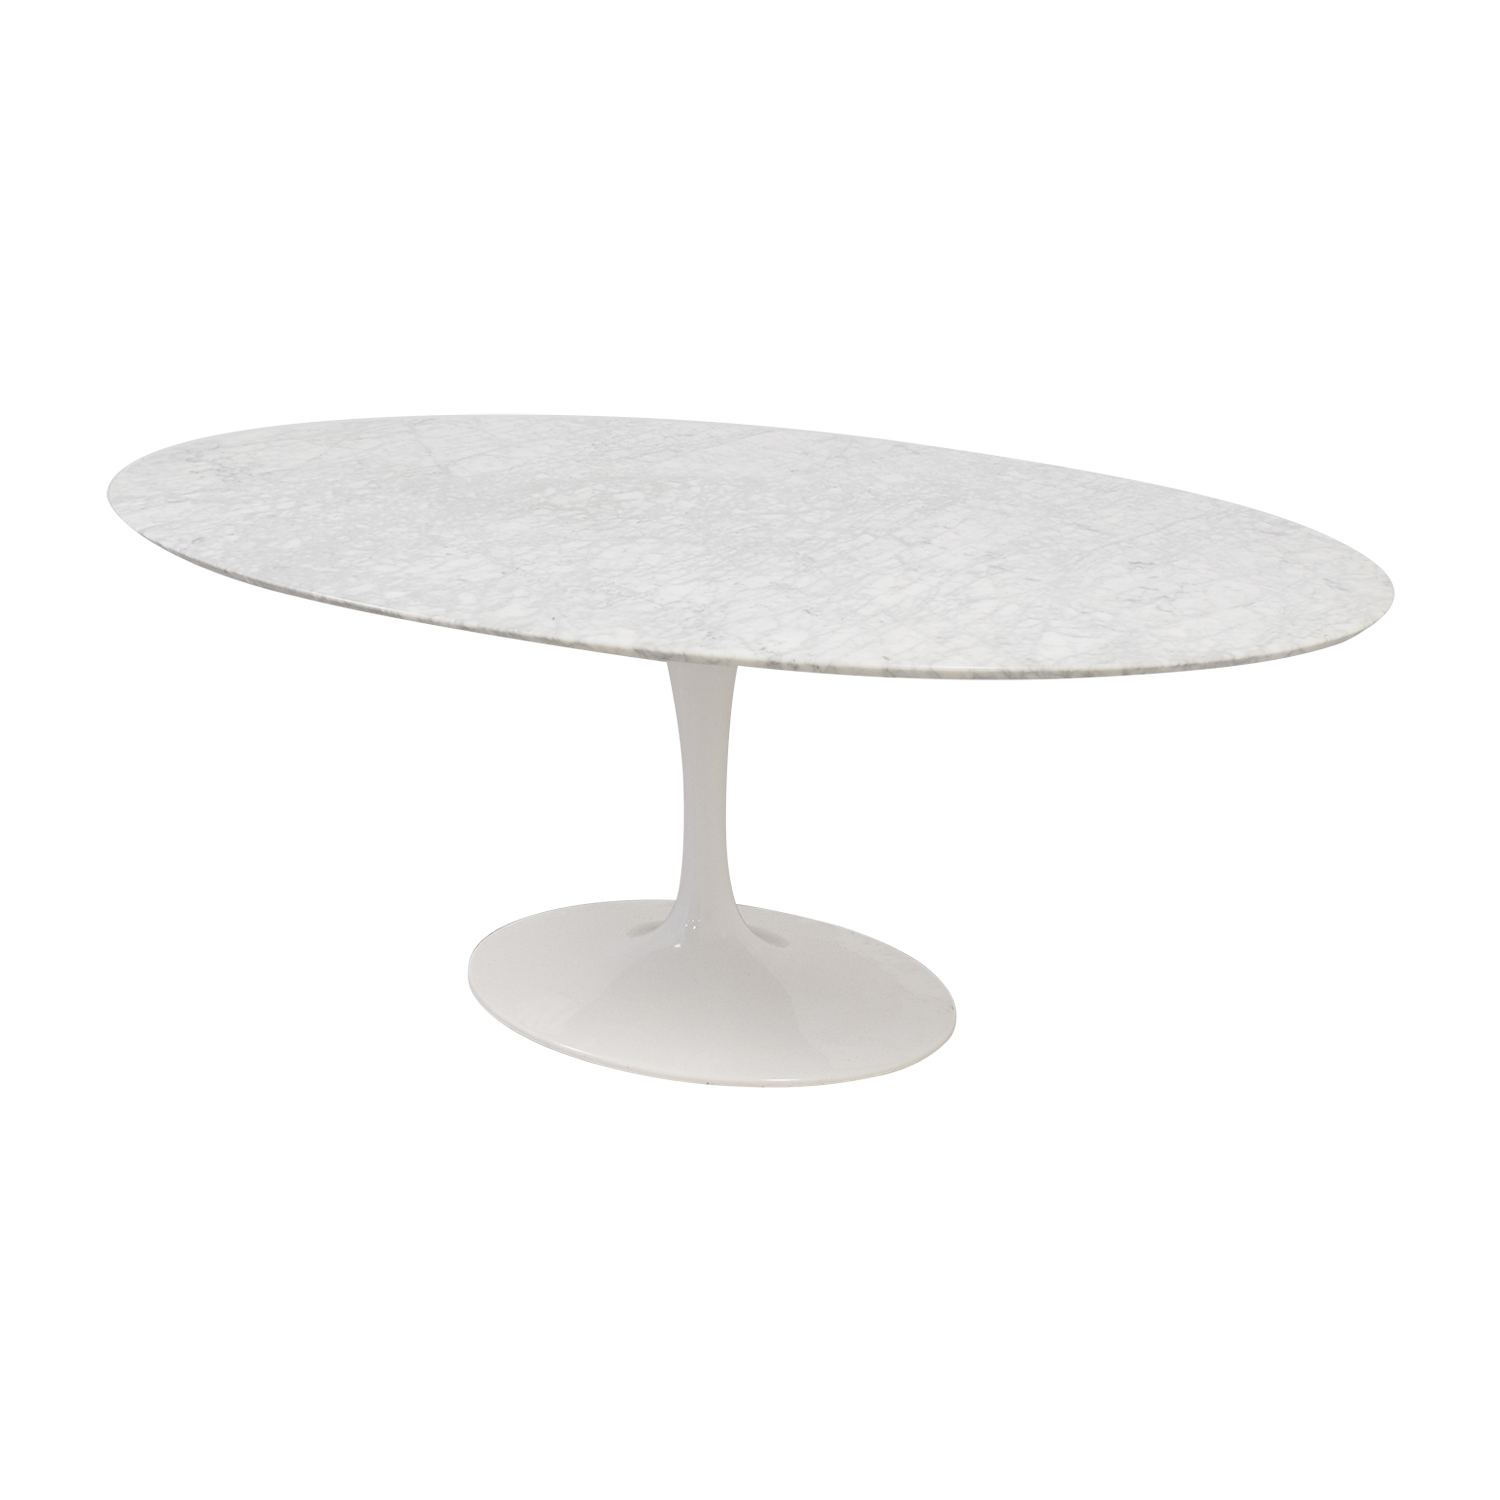 Tulip Oval Table in White Marble used